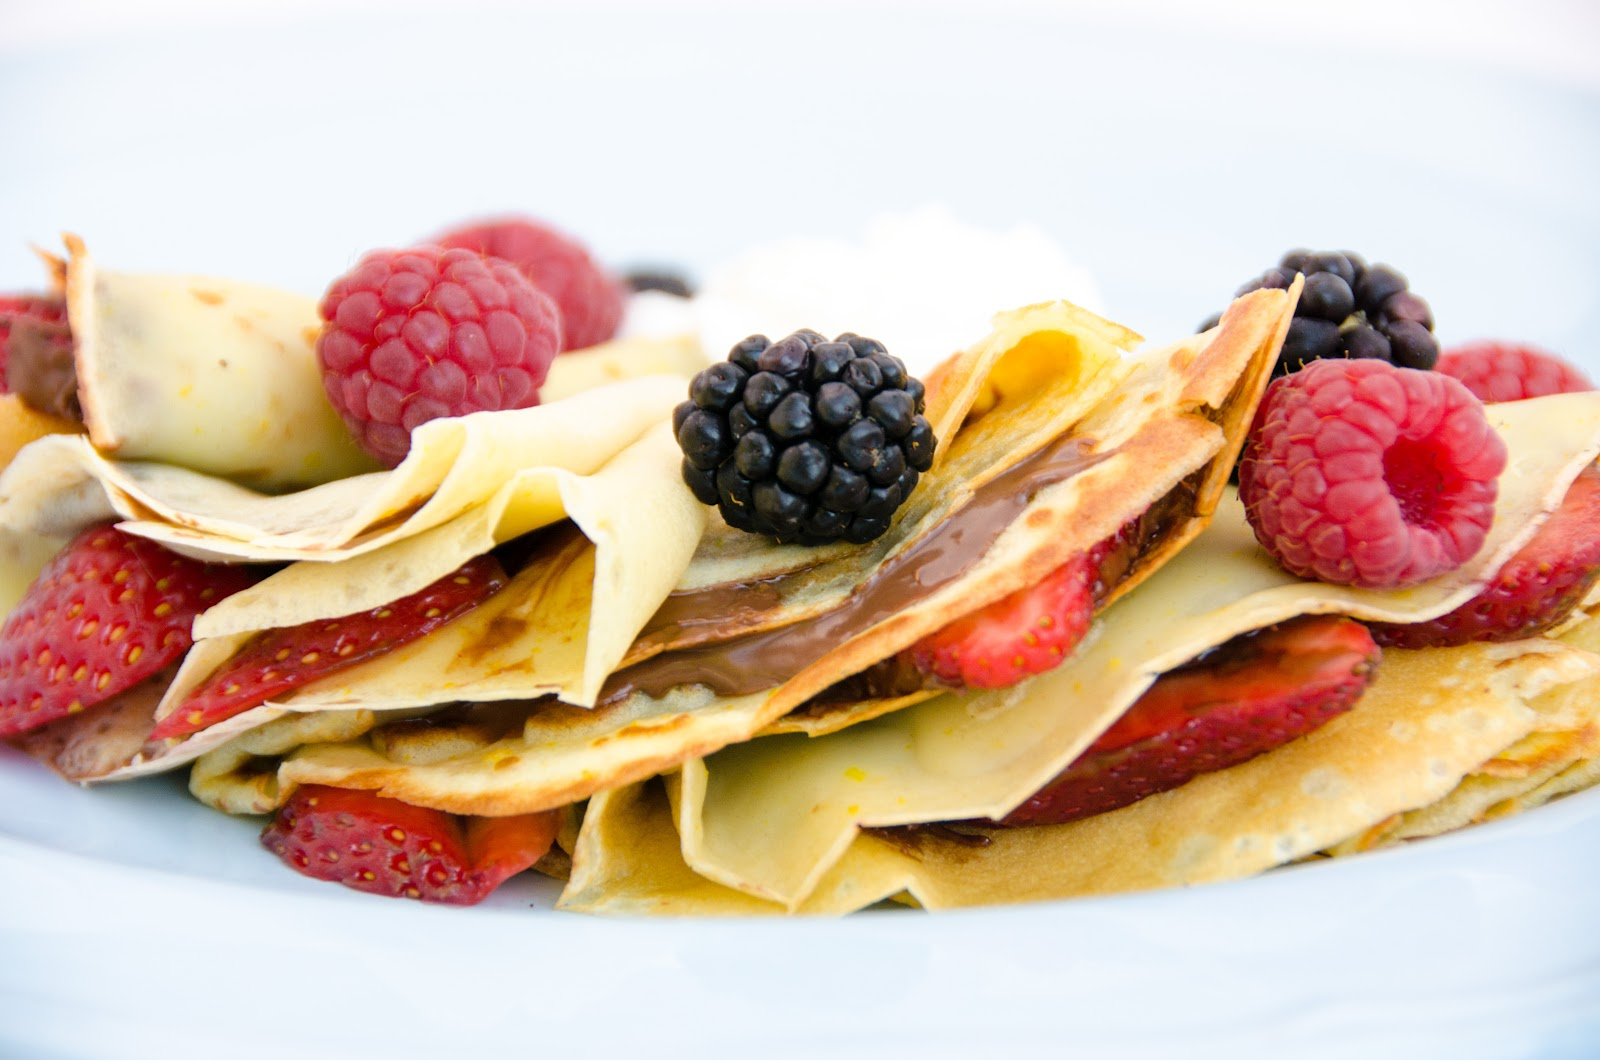 Meal Planning Made Simple: Crepes